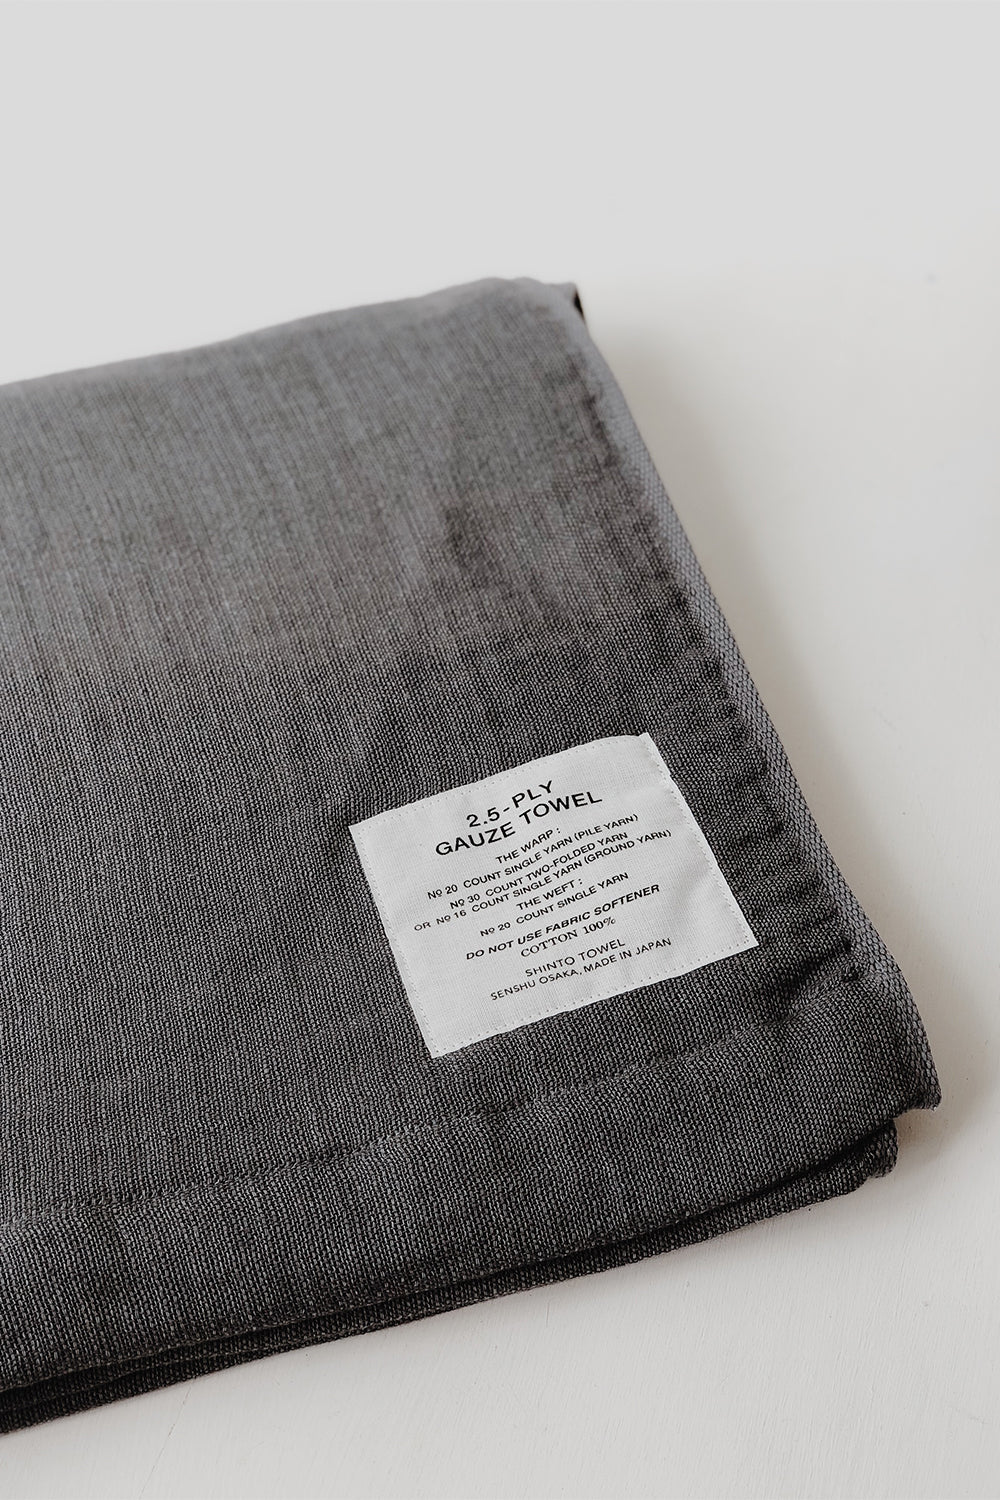 Shinto 2.5 Gauze Hand Towel - Charcoal